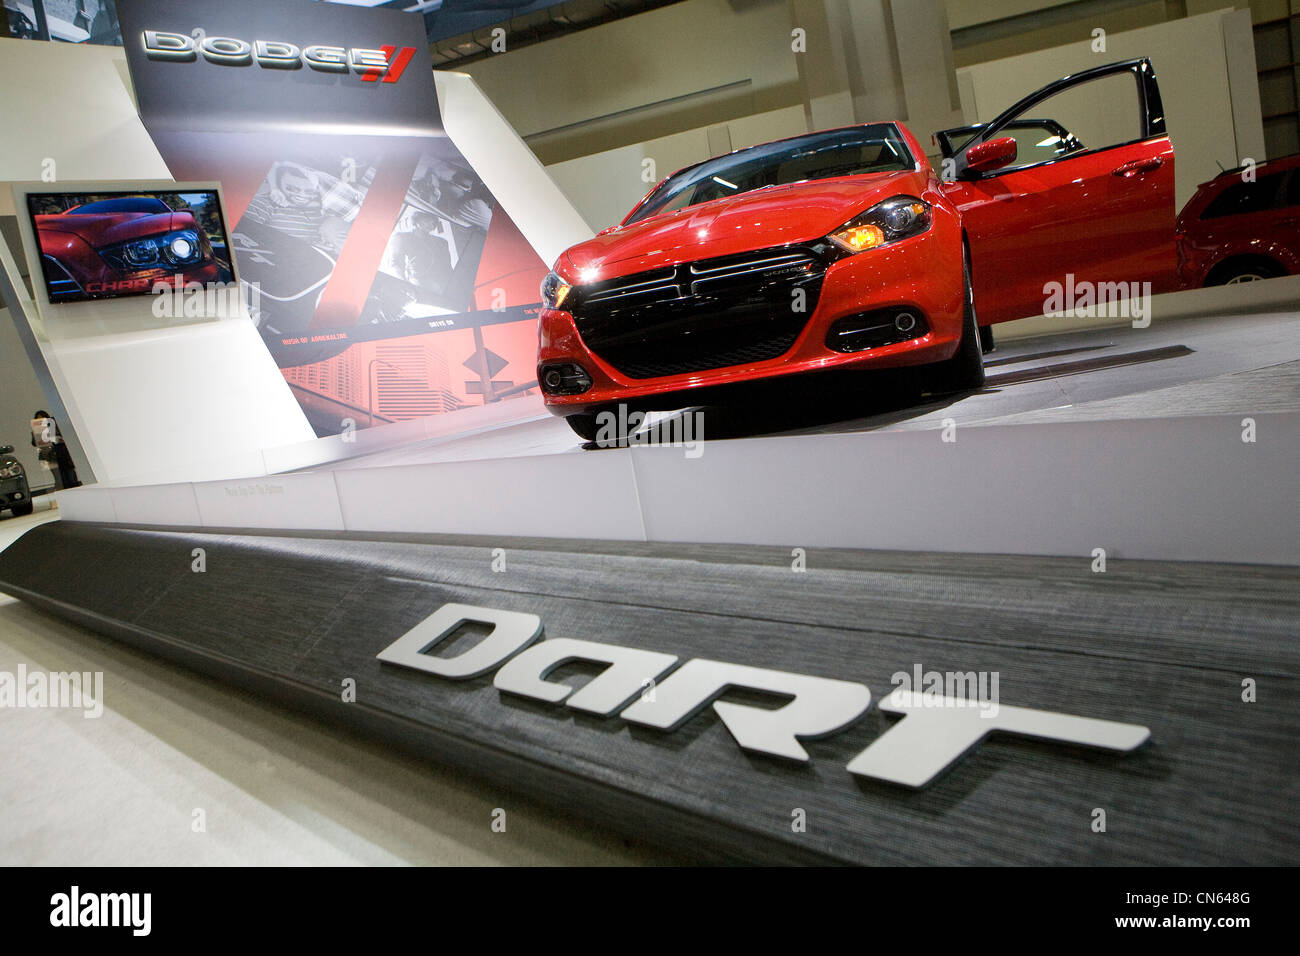 A Dodge Dart on display at the 2012 Washington Auto Show. - Stock Image